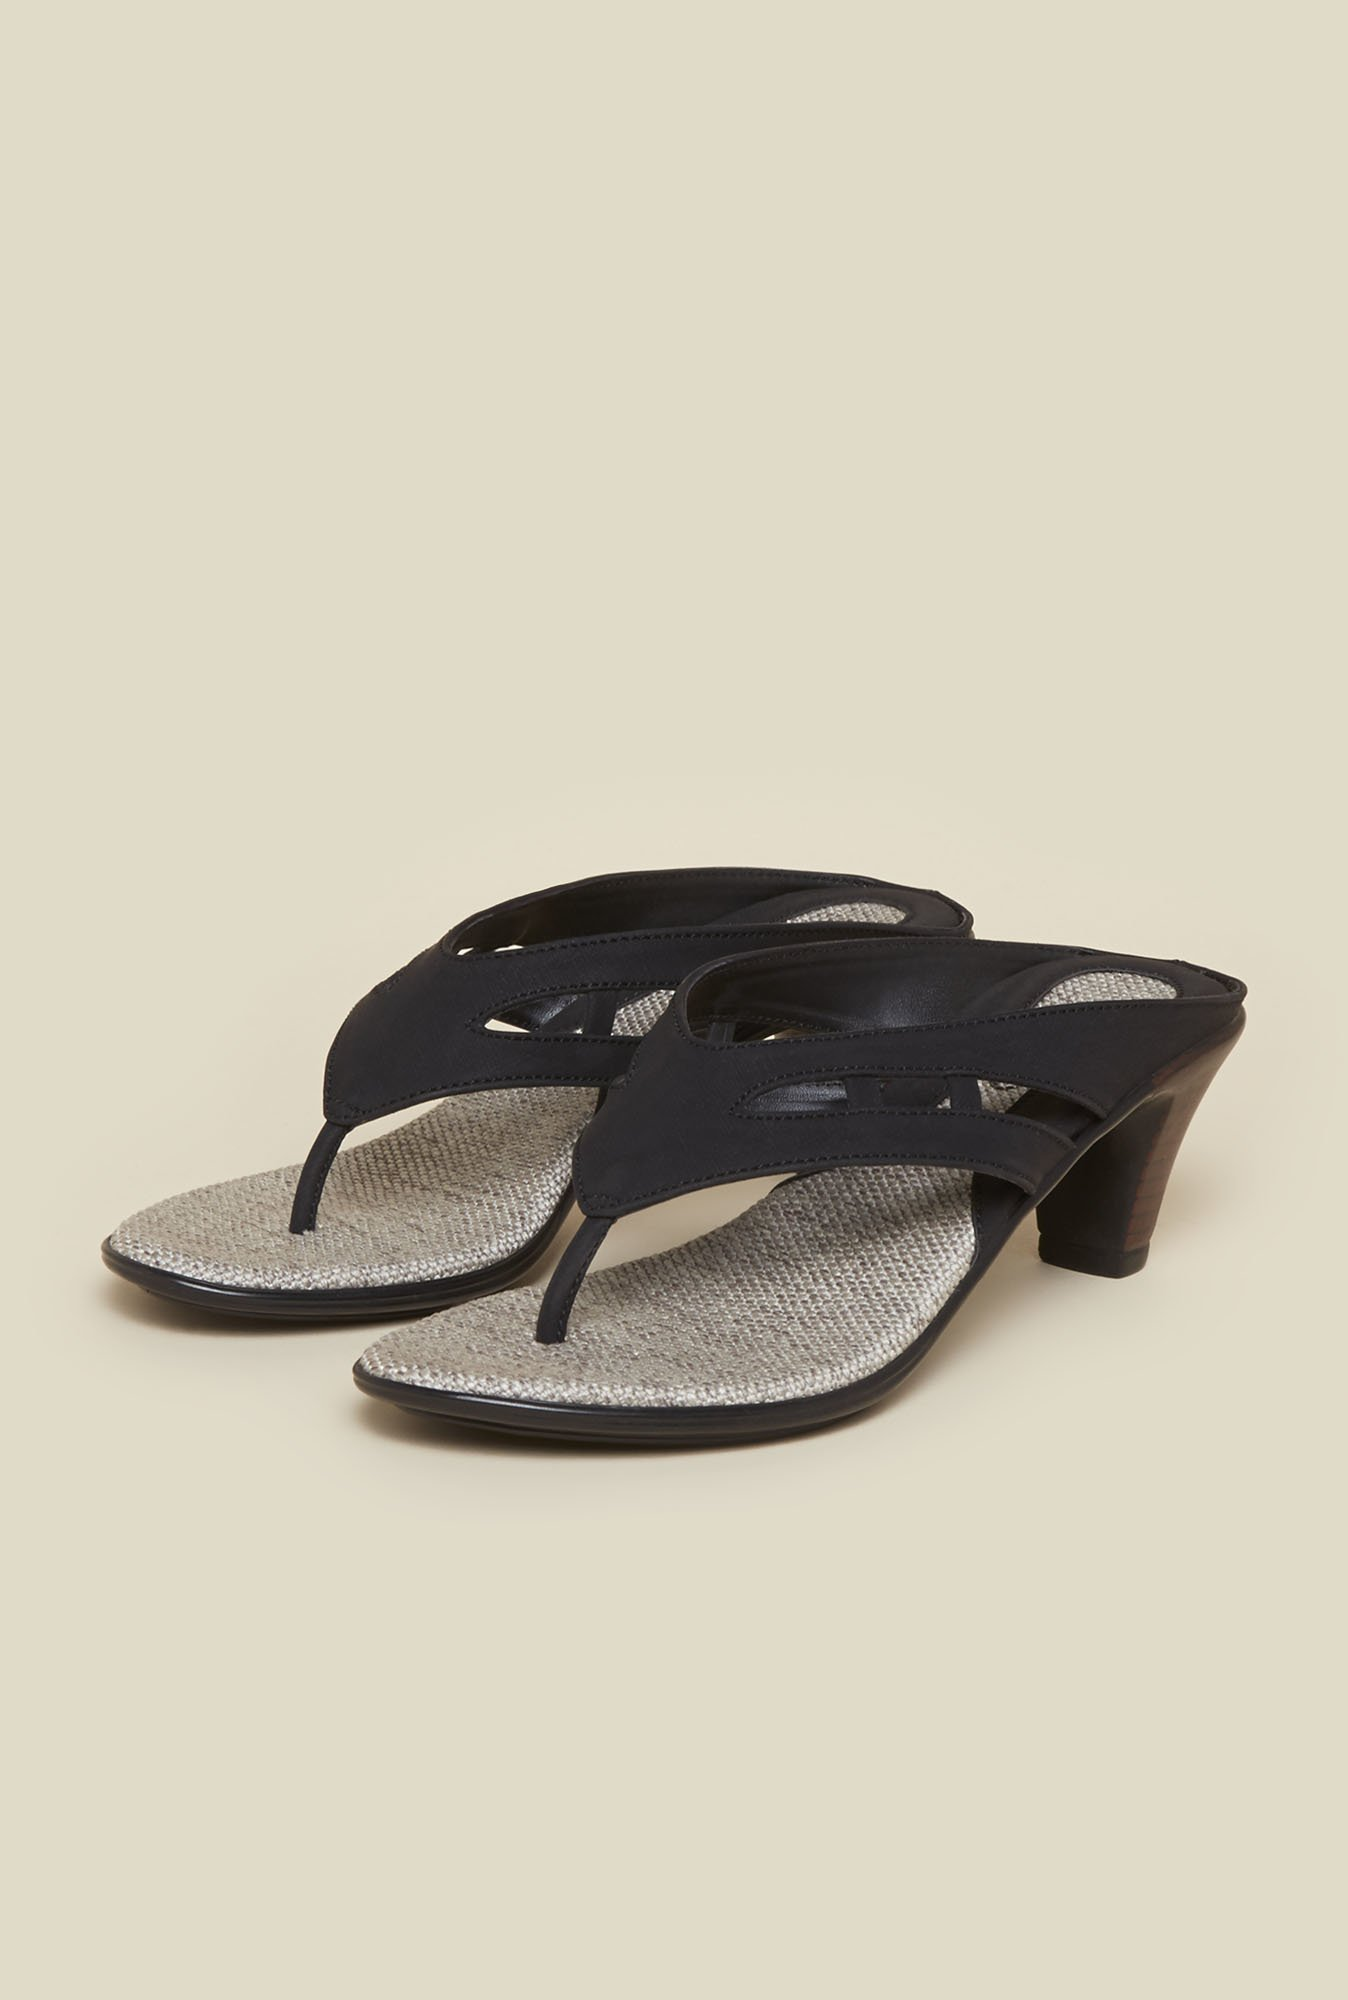 Metro Black Cut-out Block Sandals